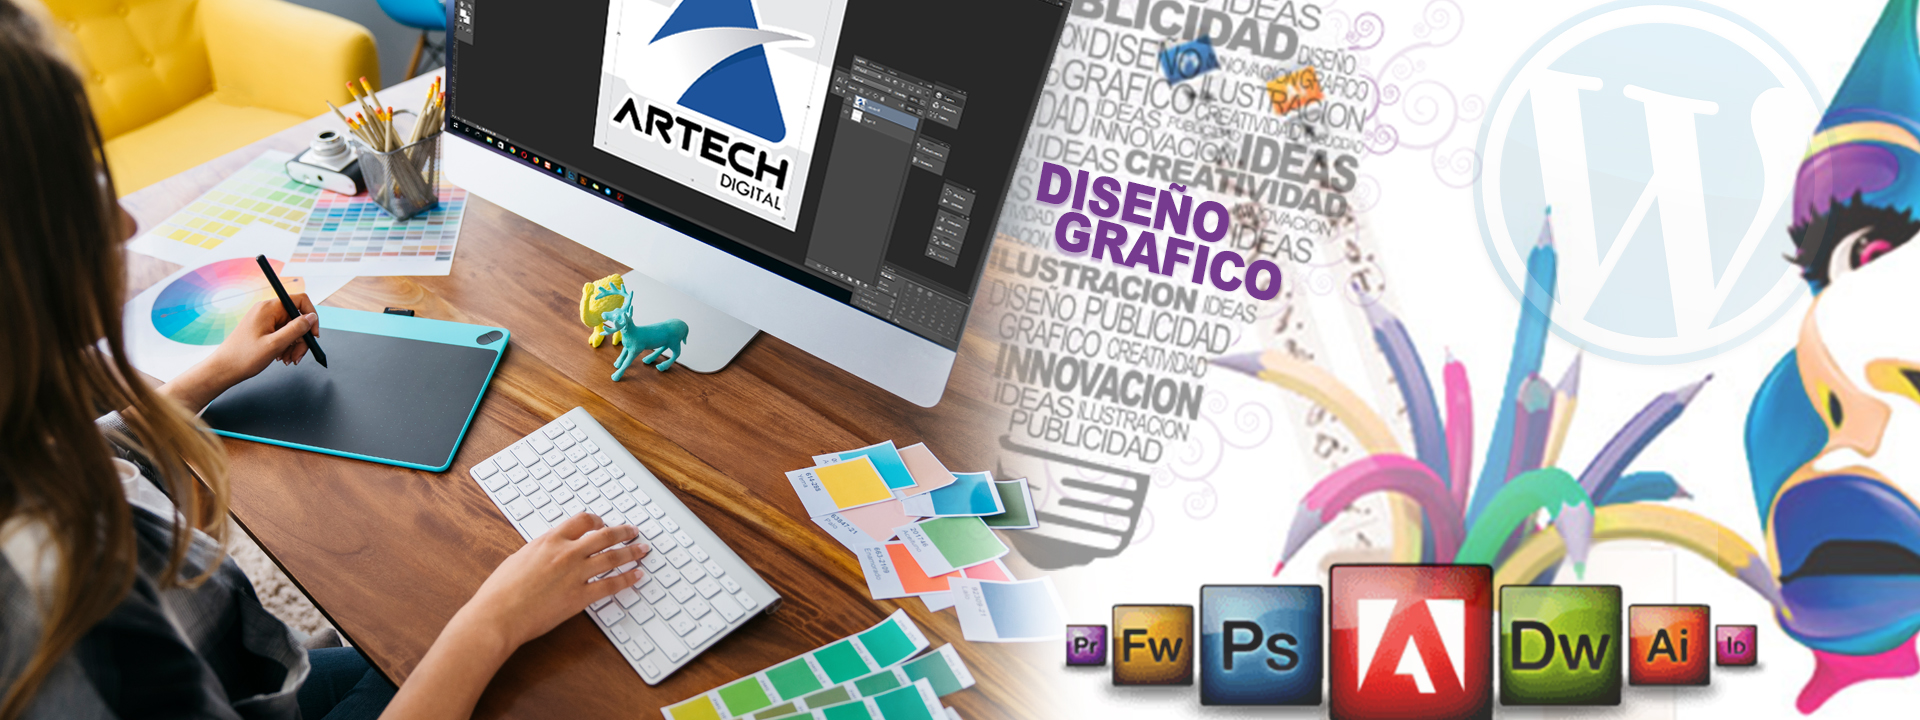 diseño grafico artech digital